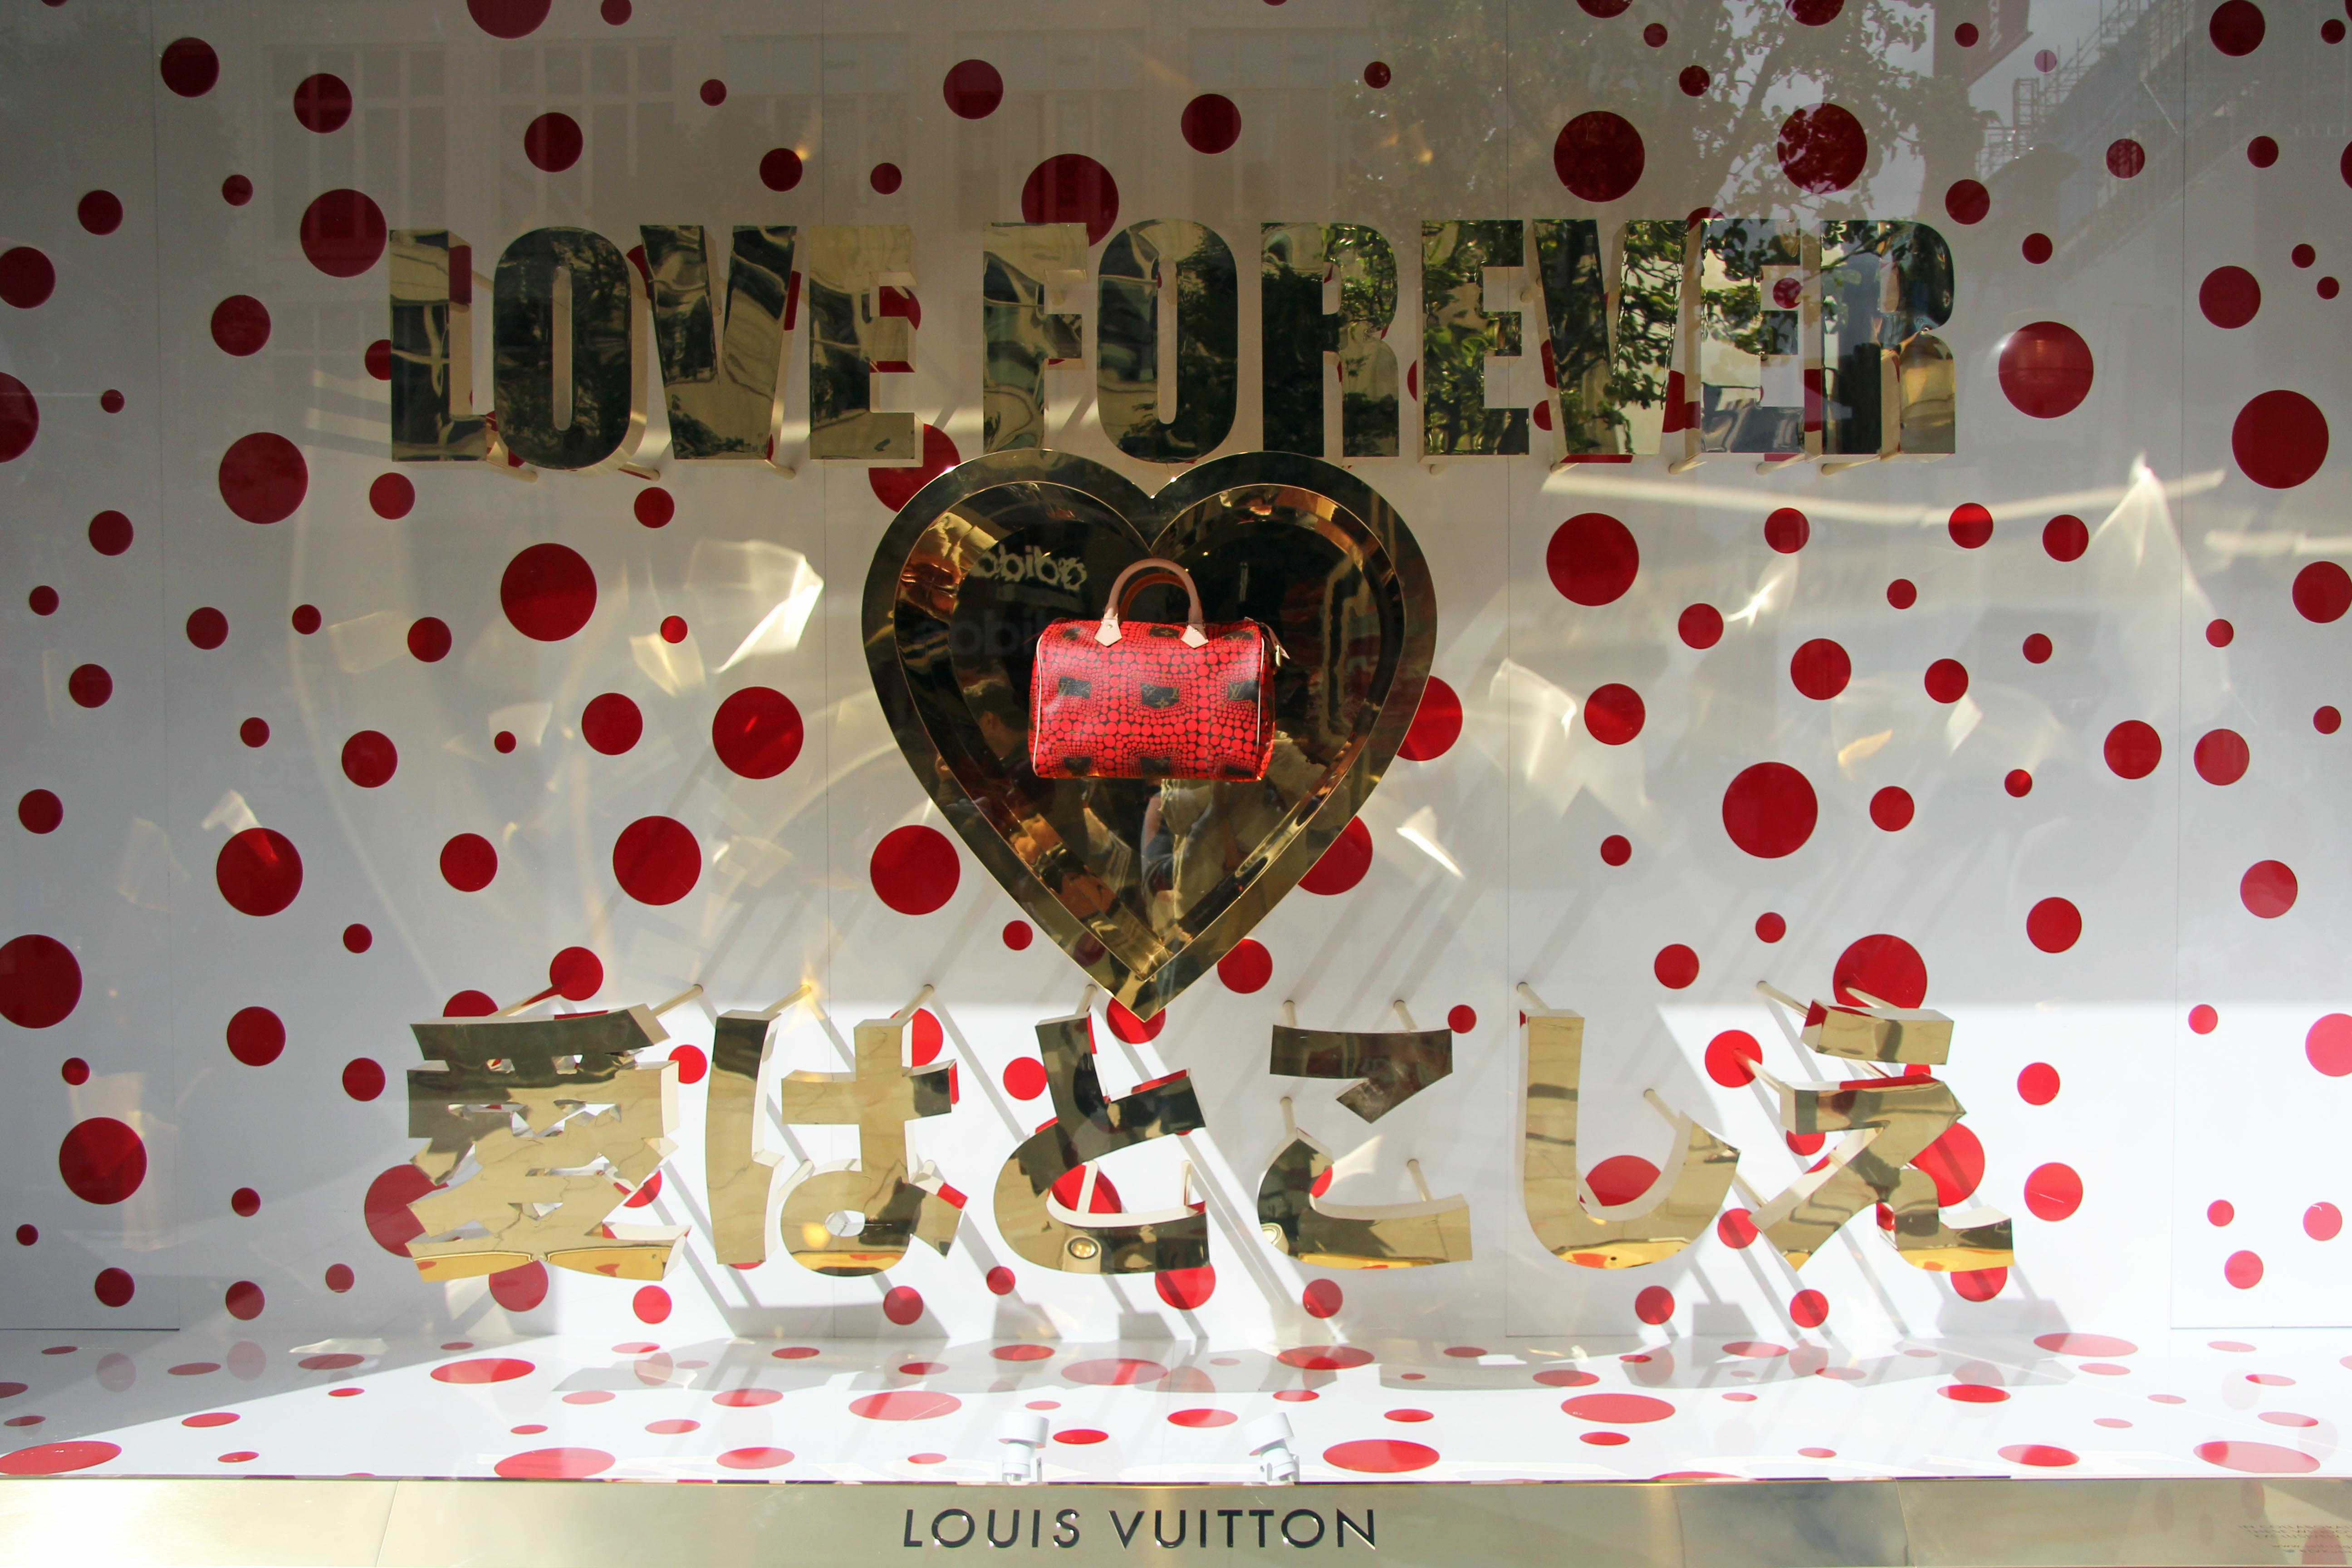 Love Forever: A Louis Vuitton handbag window display at Selfridges in London